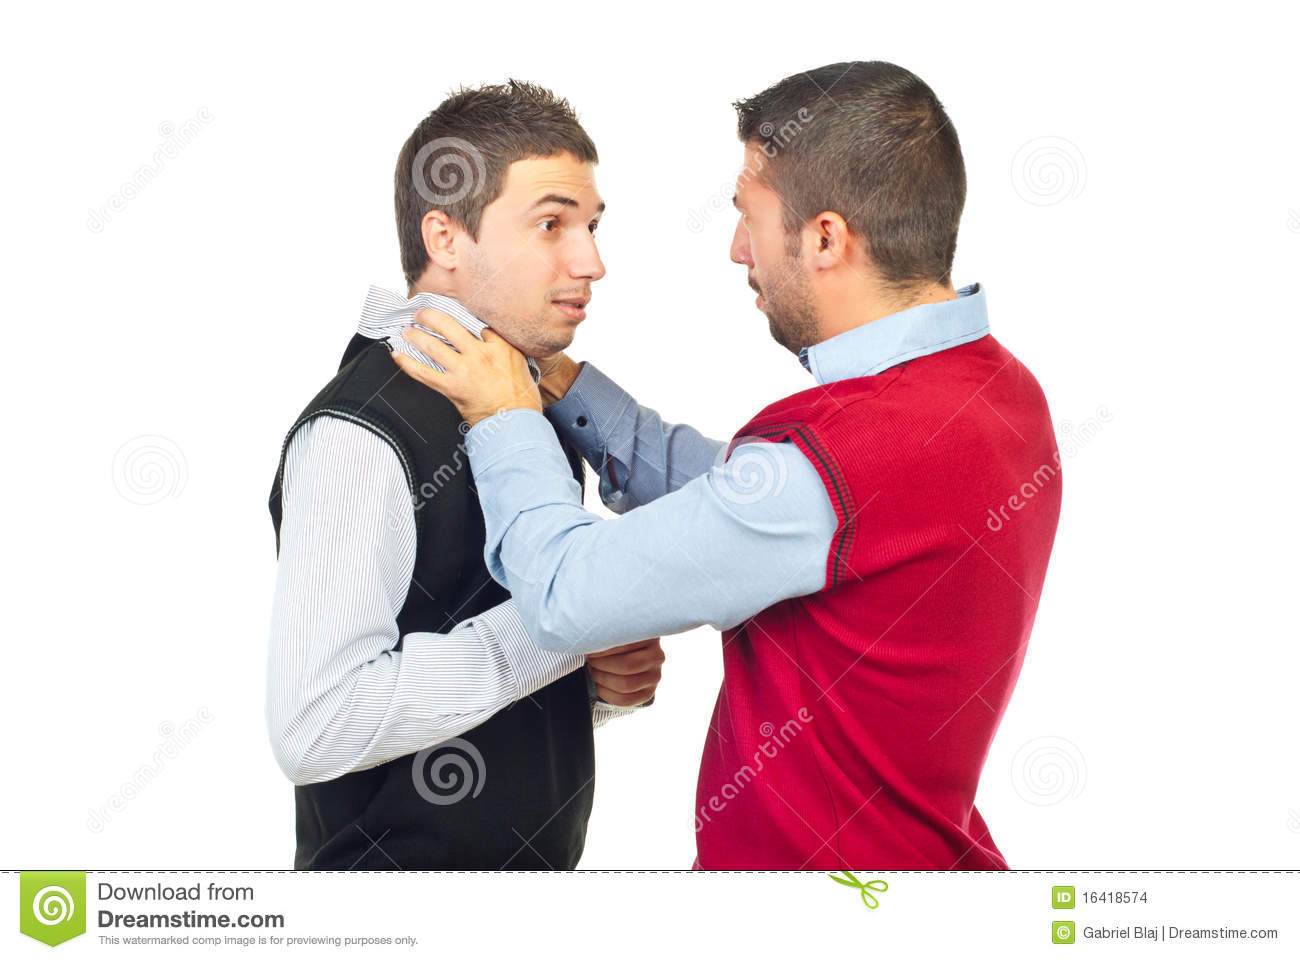 Two men fighting stock photo. Image of strangle, friends ...